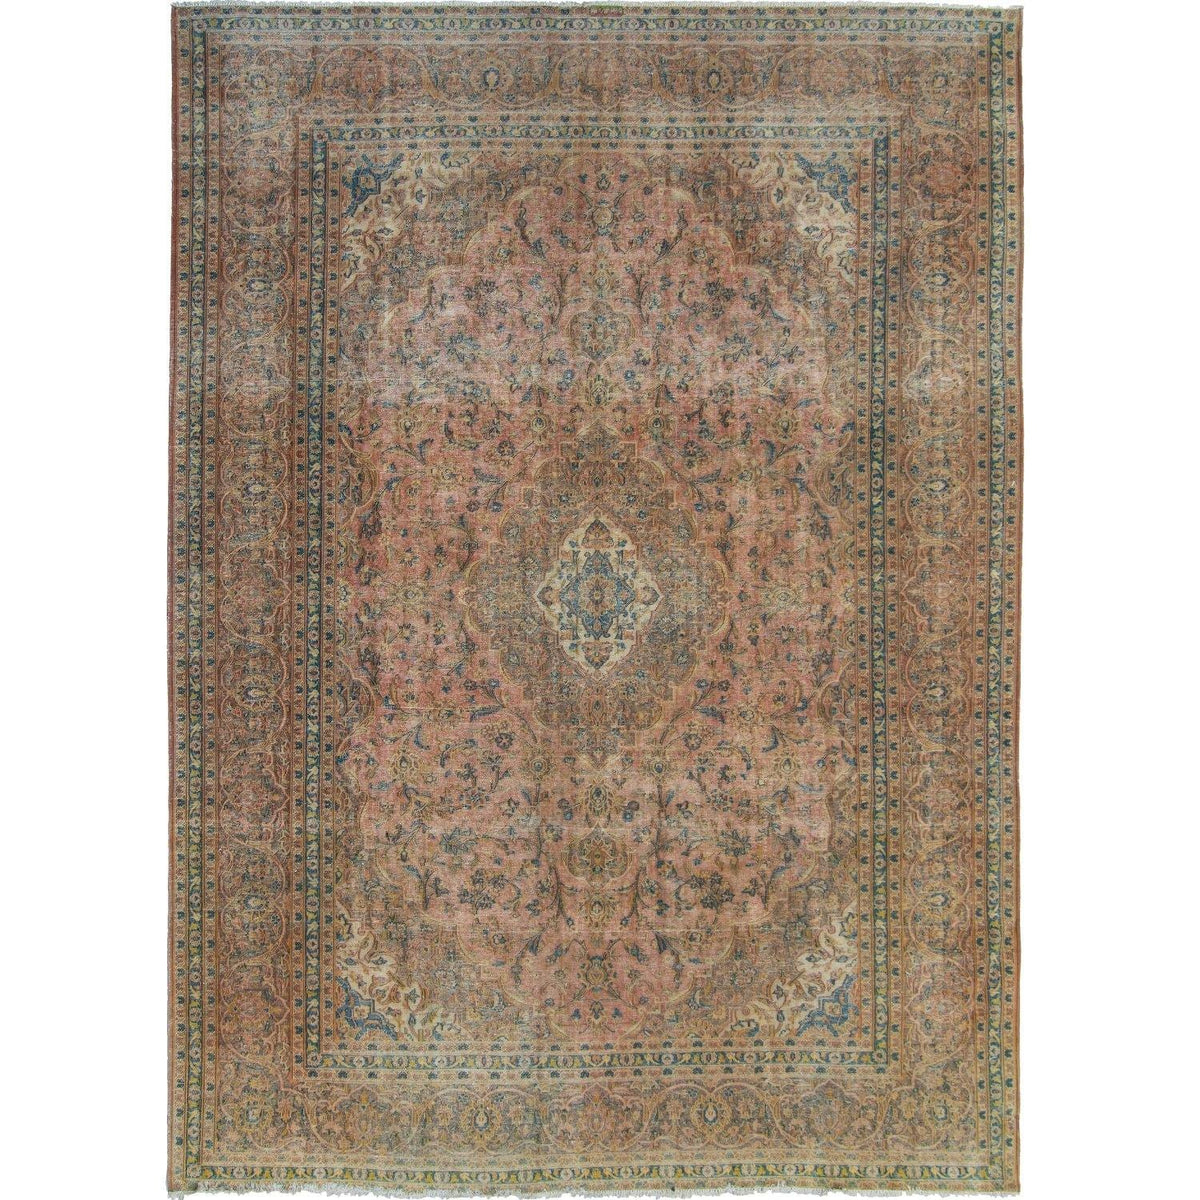 Vintage Persian Rug 301cm x 406cm Persian-Rug | House-of-Haghi | NewMarket | Auckland | NZ | Handmade Persian Rugs | Hand Knotted Persian Rugs